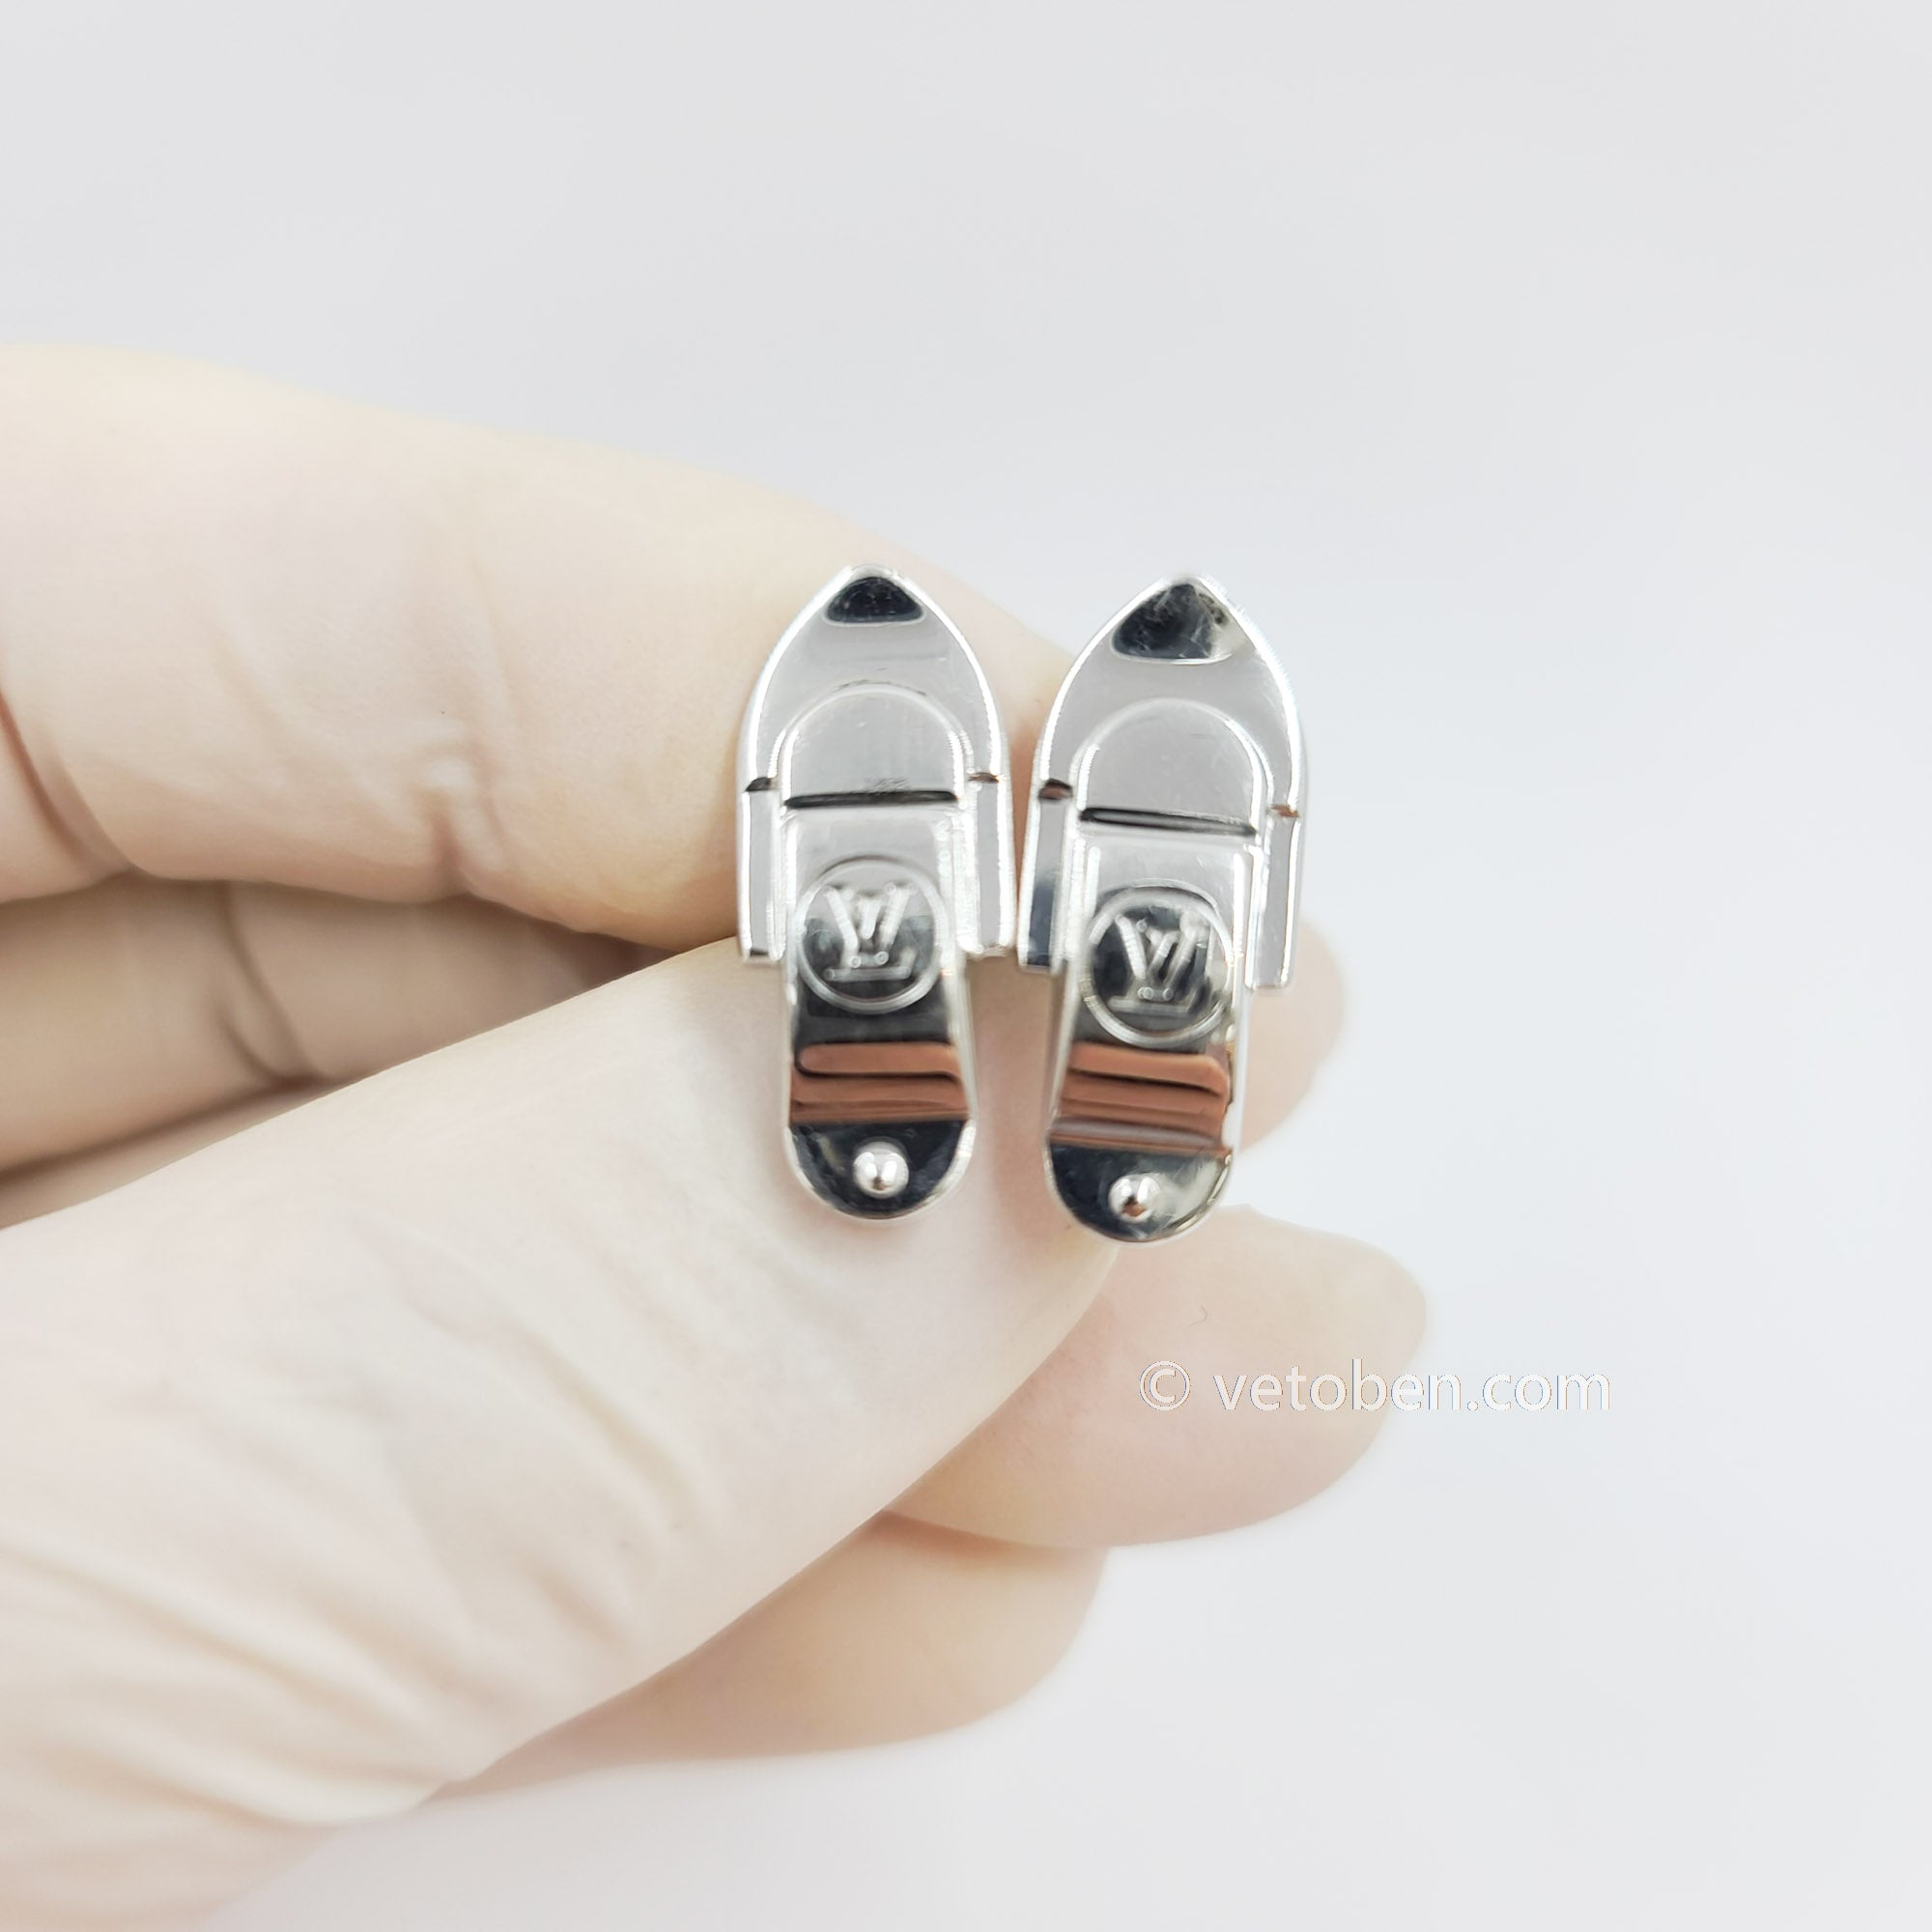 Authentic Louis Vuitton Cufflinks SV925 Silver